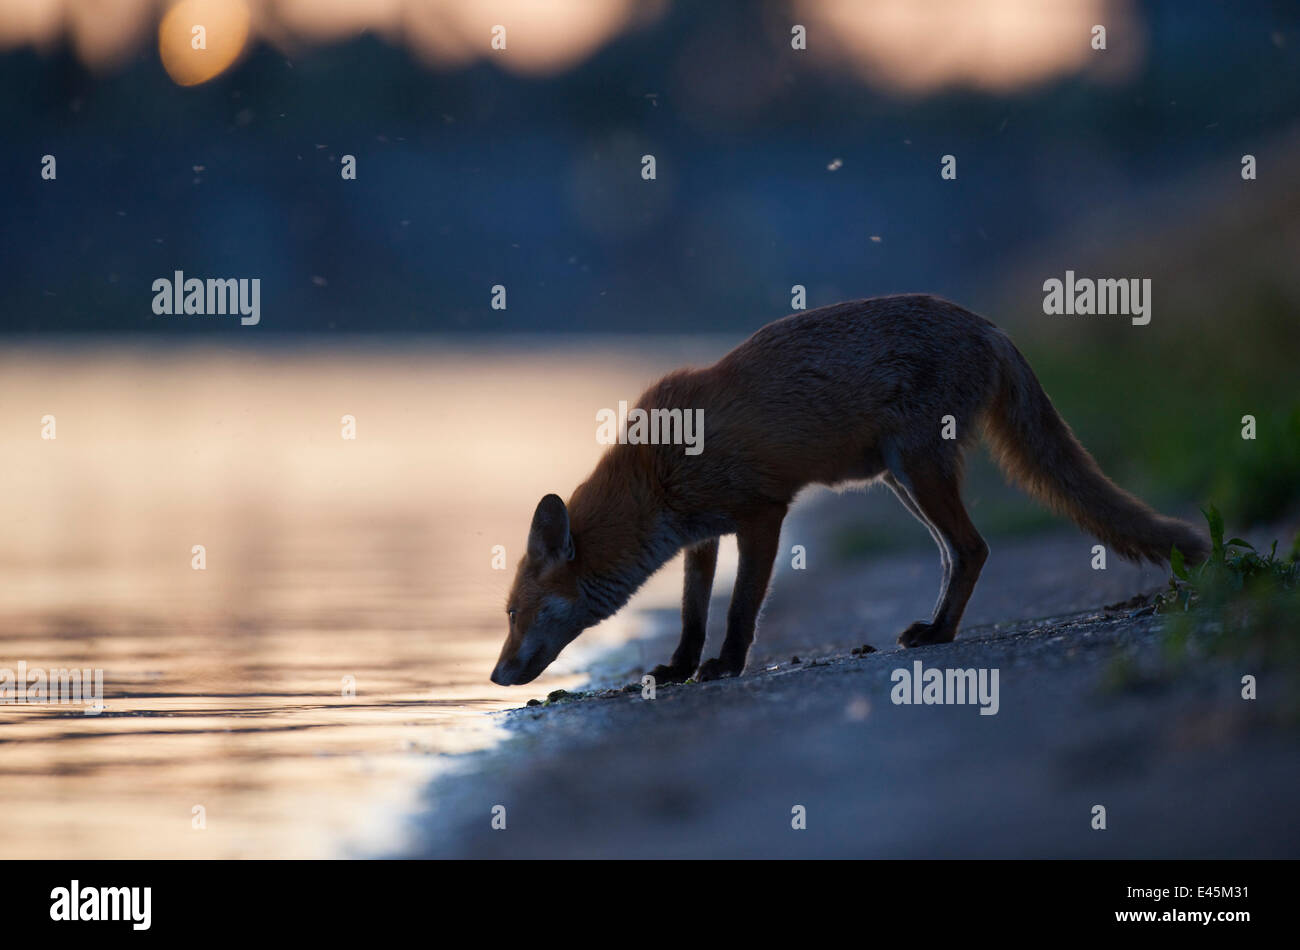 Urban Red fox (Vulpes vulpes) at waters edge, London, May 2009 - Stock Image